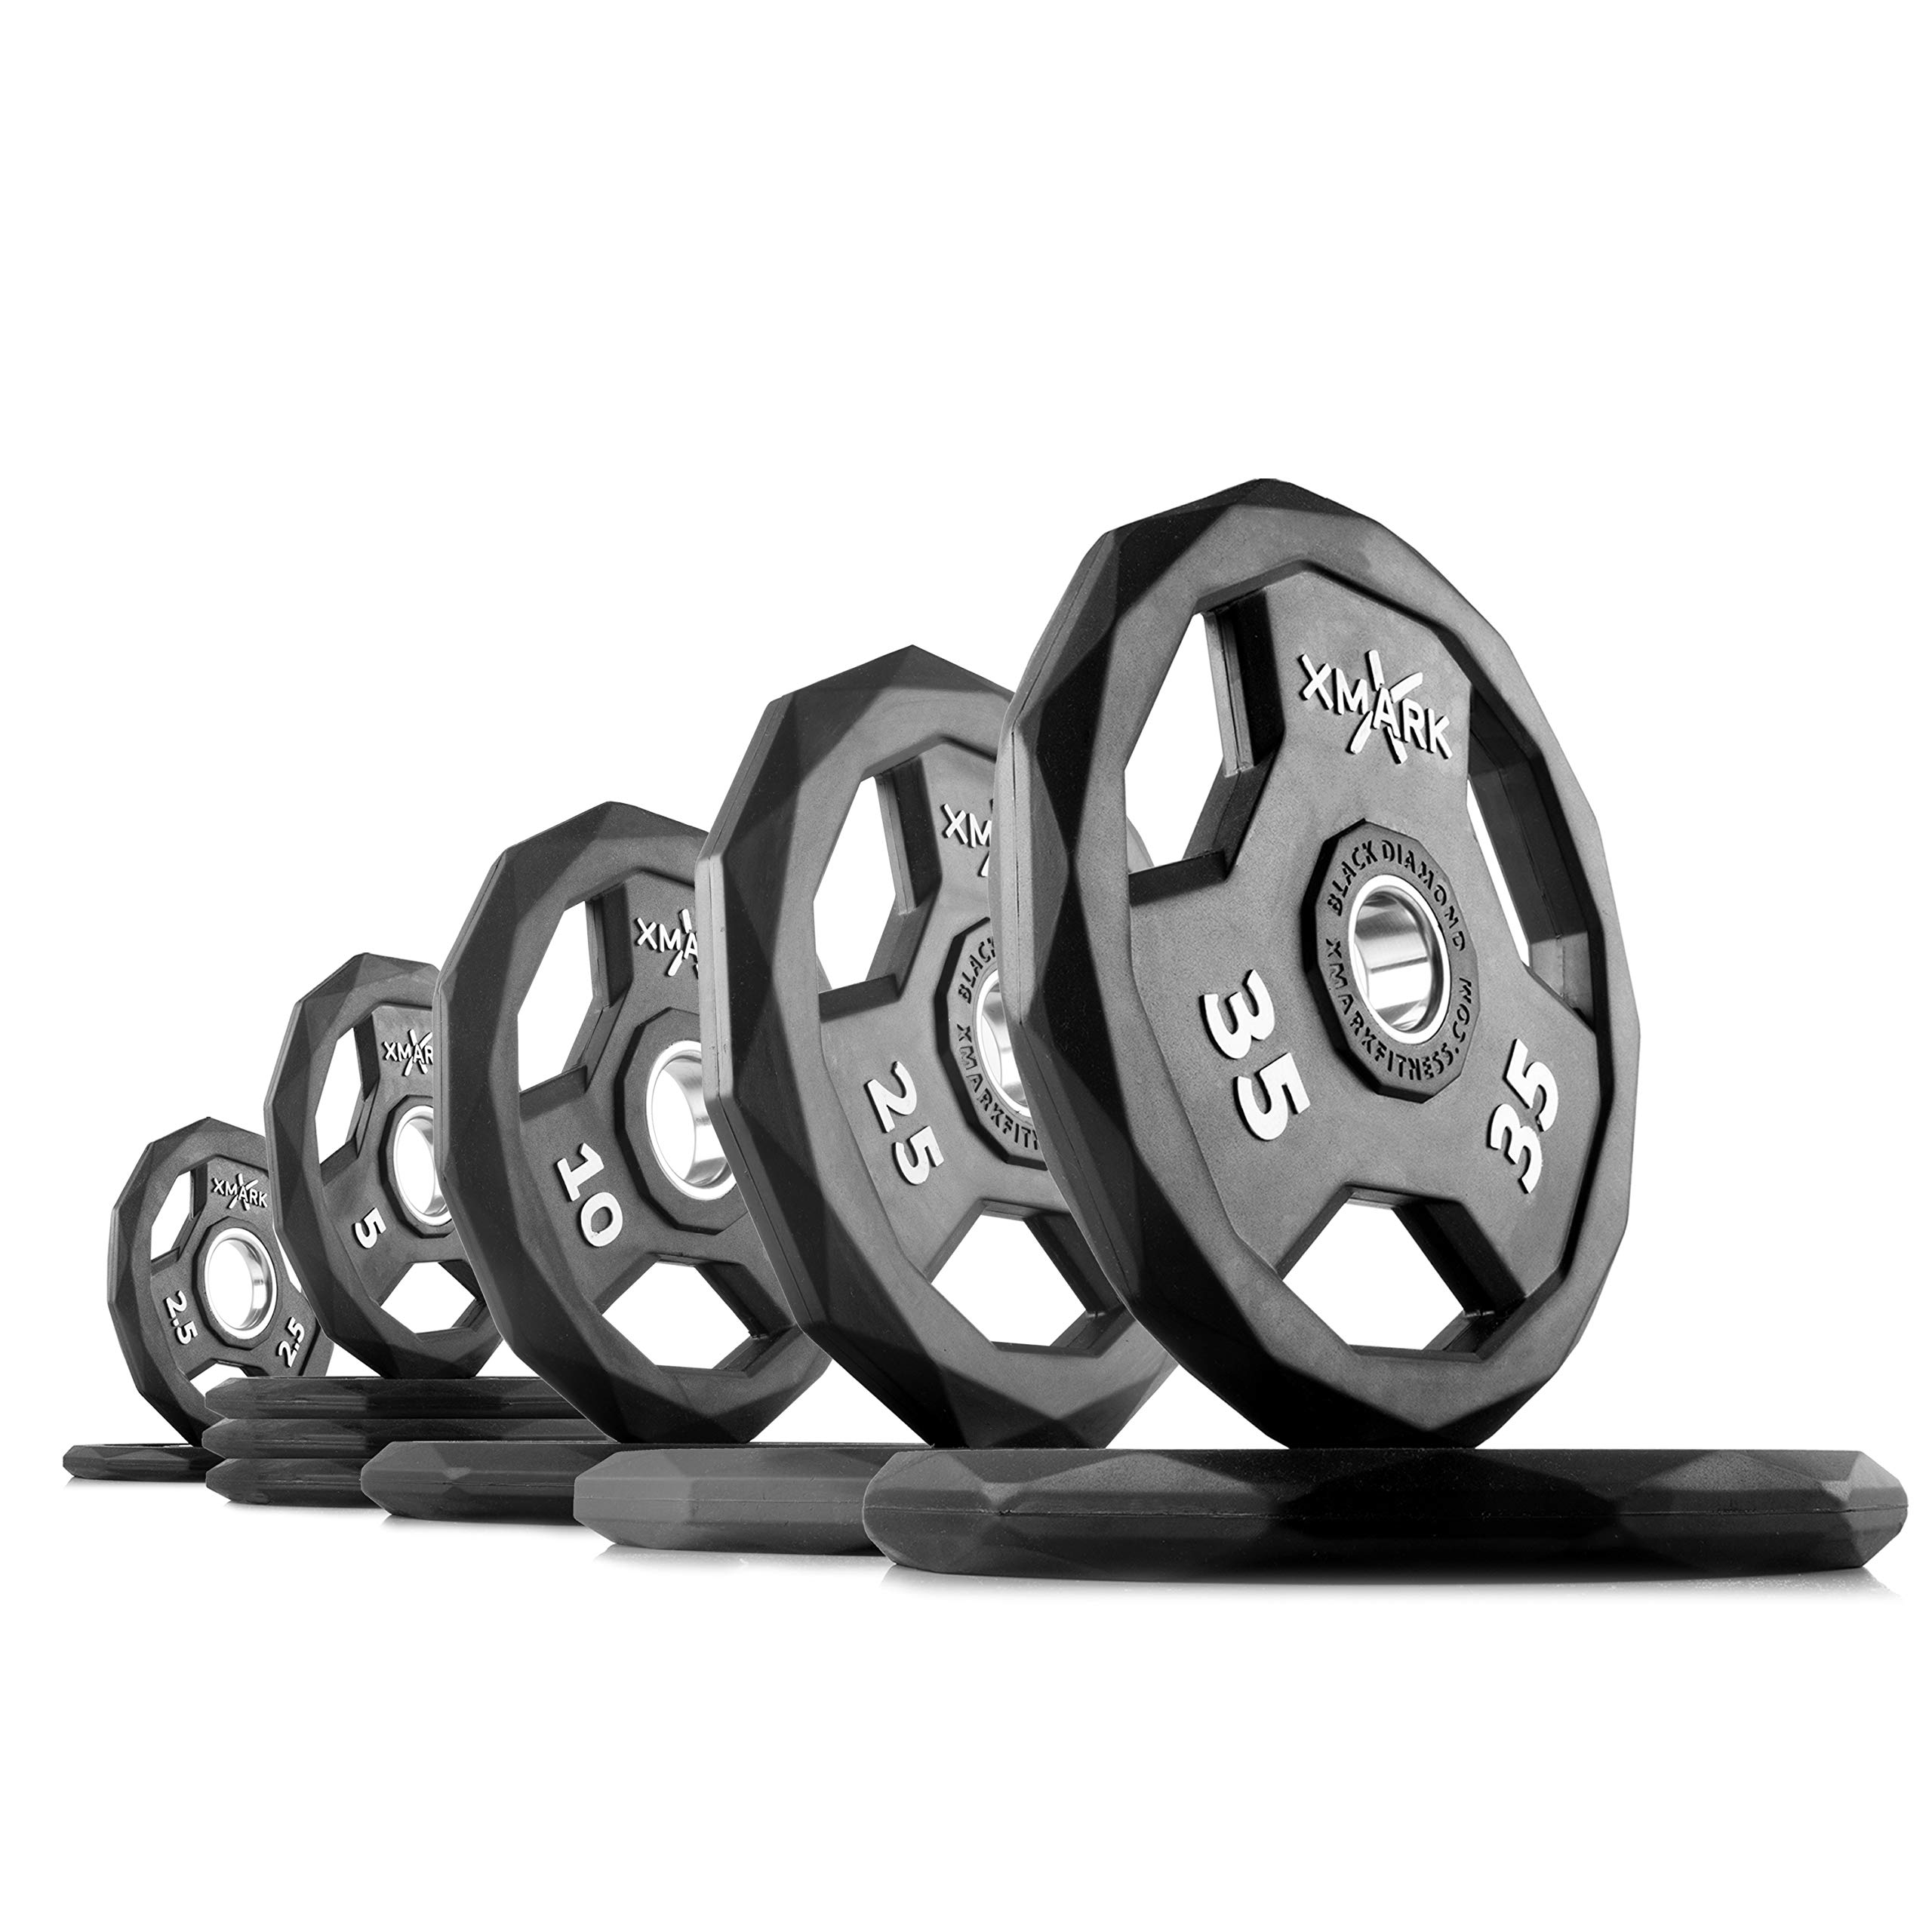 XMark Black Diamond 165 lb Set Olympic Weight Plates, One-Year Warranty, Patented Design